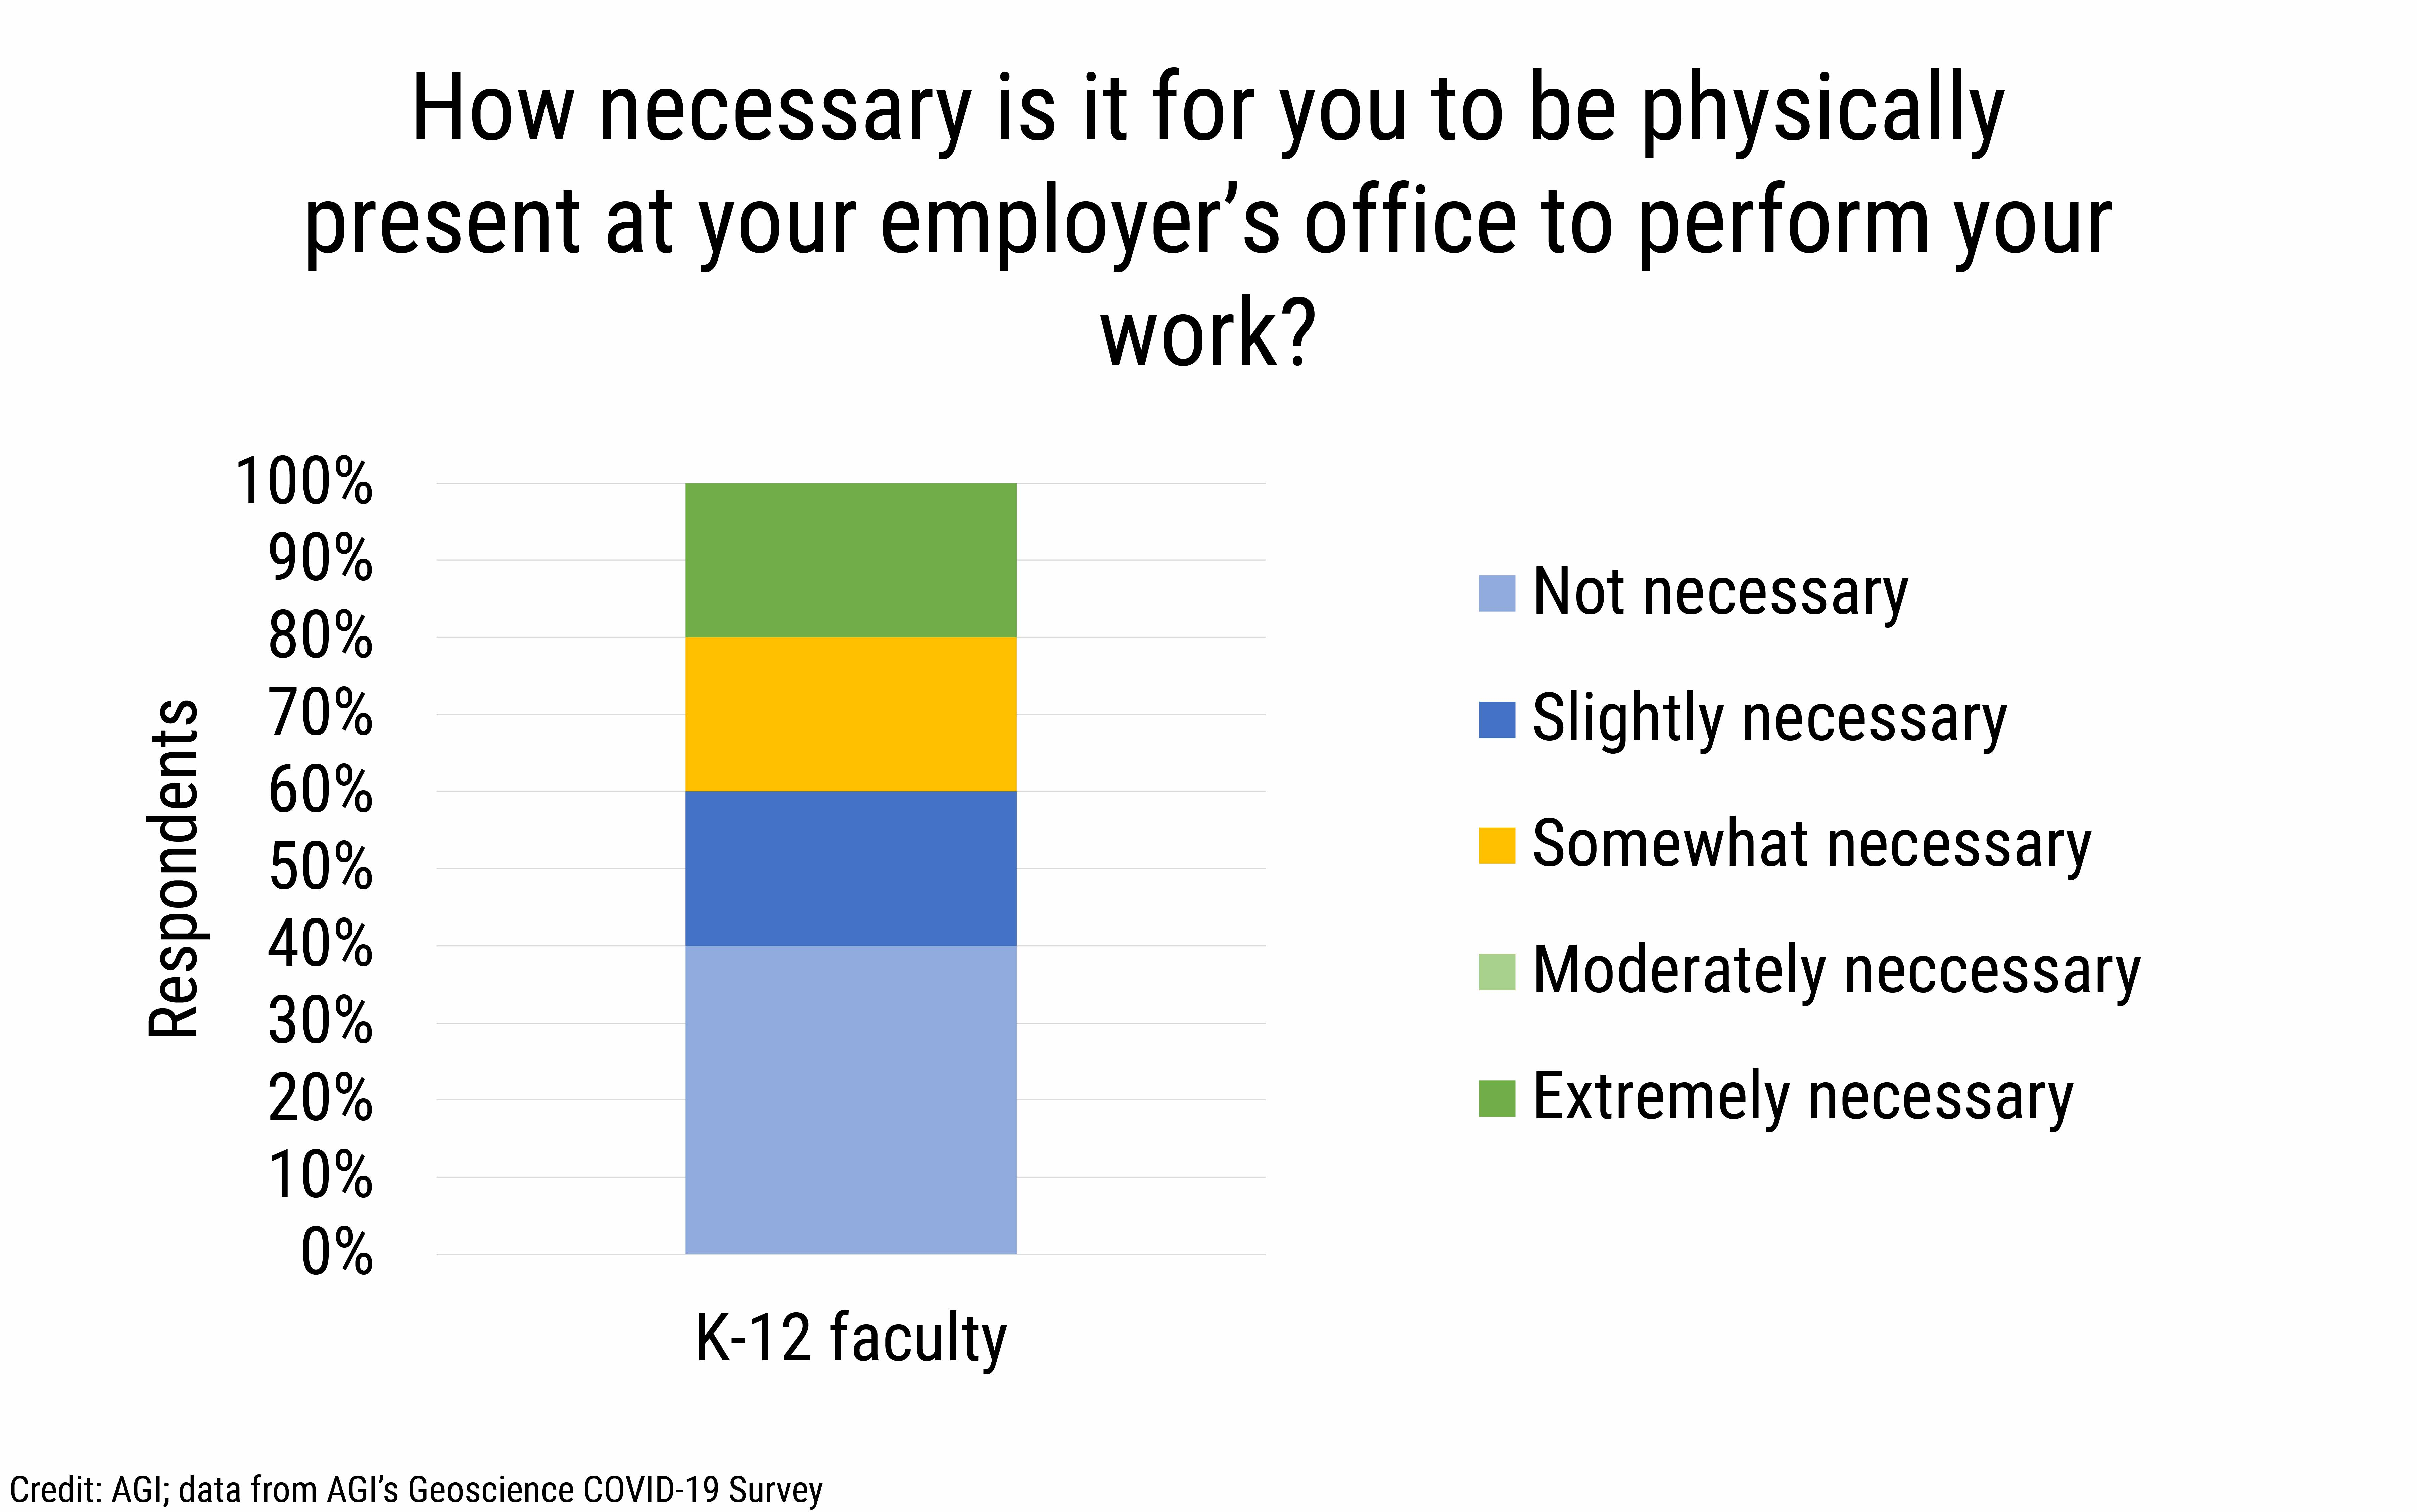 DB_2021-013 chart 02: How necessary is it for you to be physically present at your employer's office to perform your work? (Credit: AGI; data from AGI's Geoscience COVID-19 Survey)